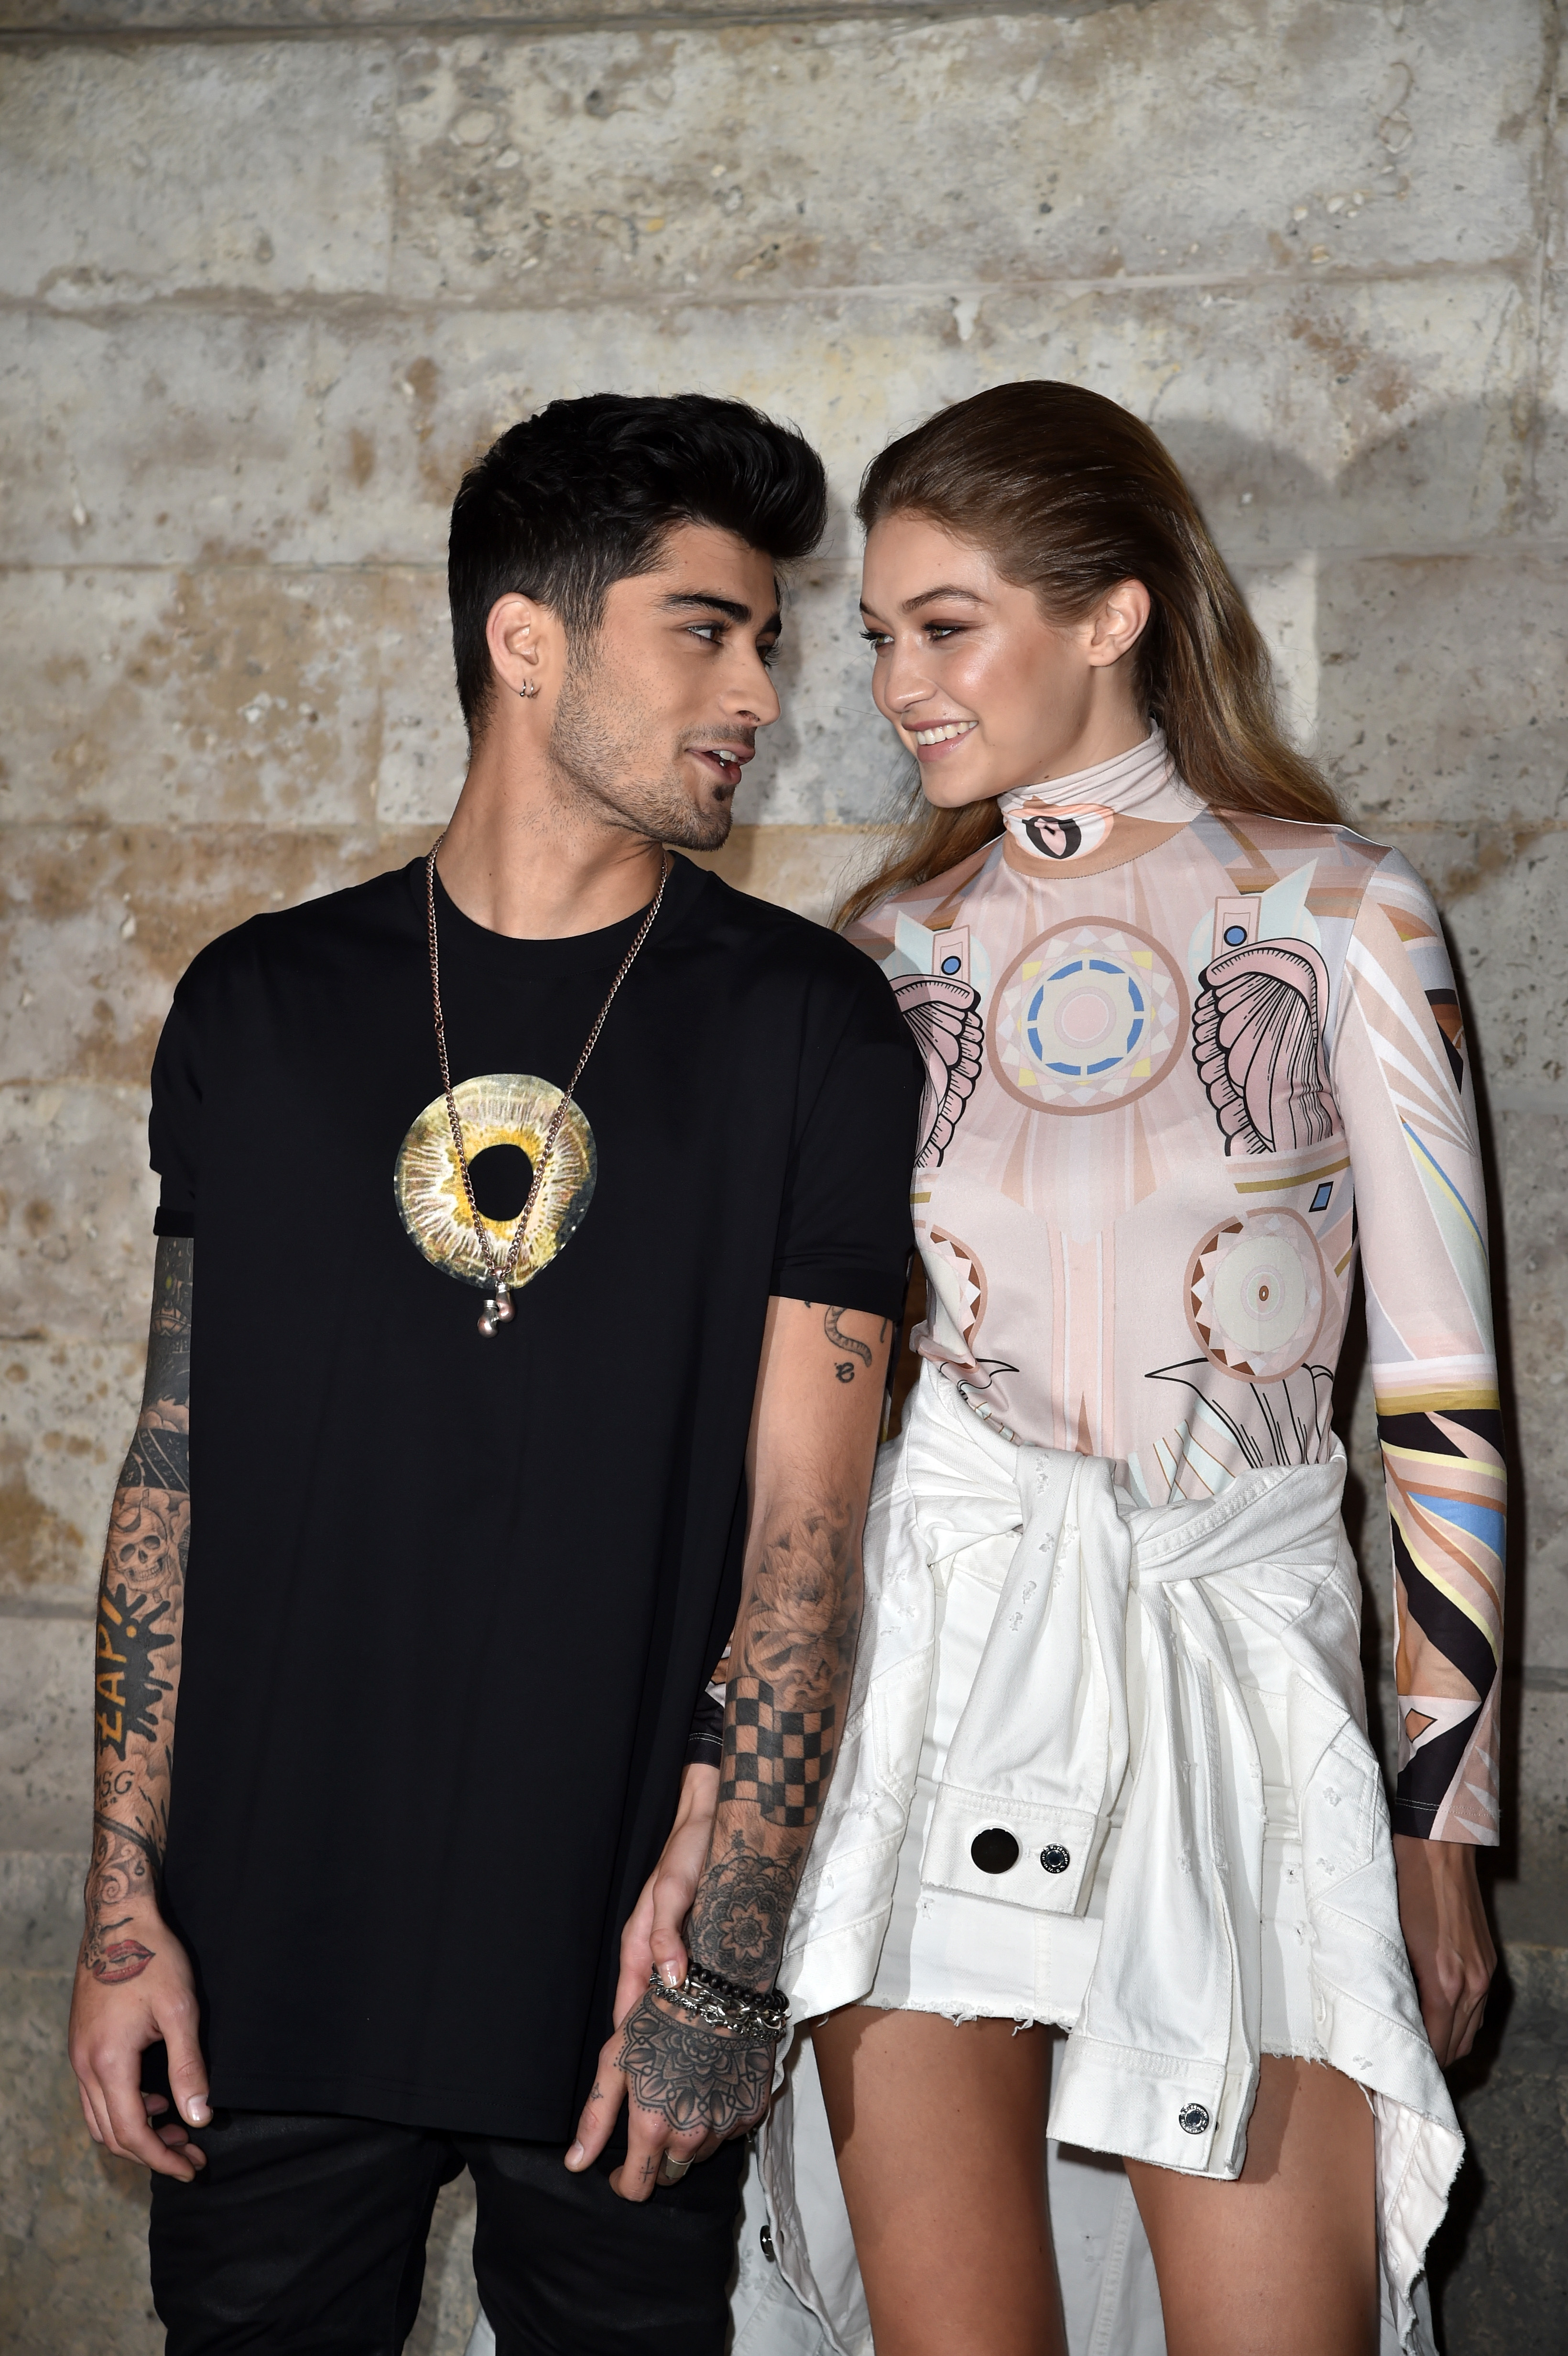 Zayn Malik and Gigi Hadid attend the Givenchy show as part of the Paris Fashion Week Womenswear Spring/Summer 2017 on October 2, 2016 in Paris, France. (Getty Images)